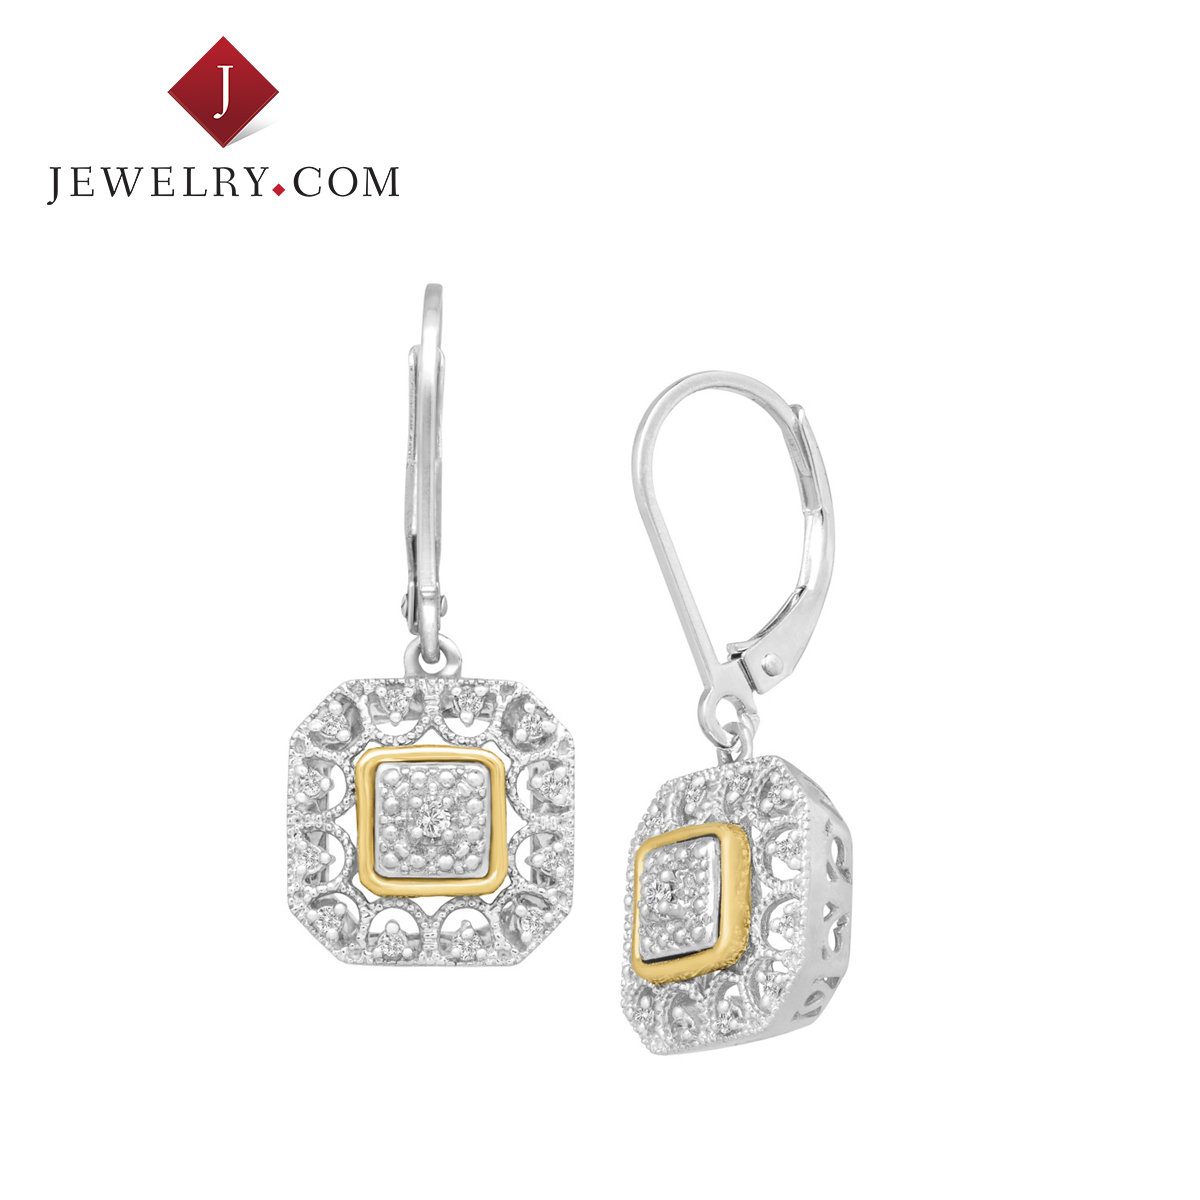 Jewelry.com official 925 silver 0.1 karat k gold diamond gold and silver thread box ms. retro charm earrings